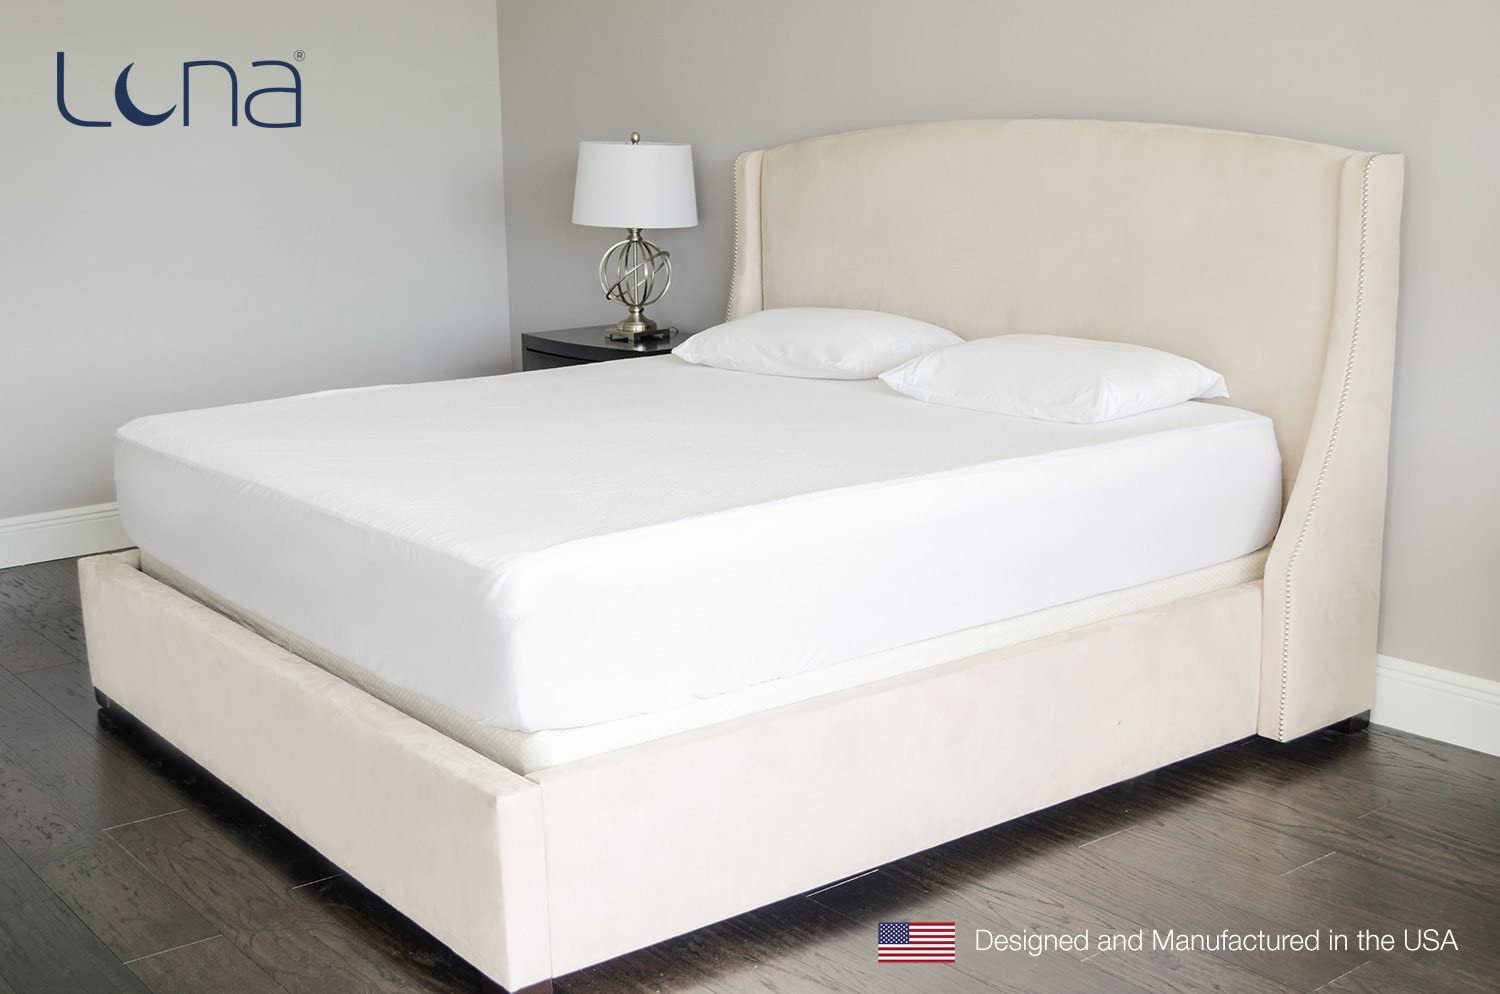 A bare bed outfitted with a Luna brand mattress and pillow protector.